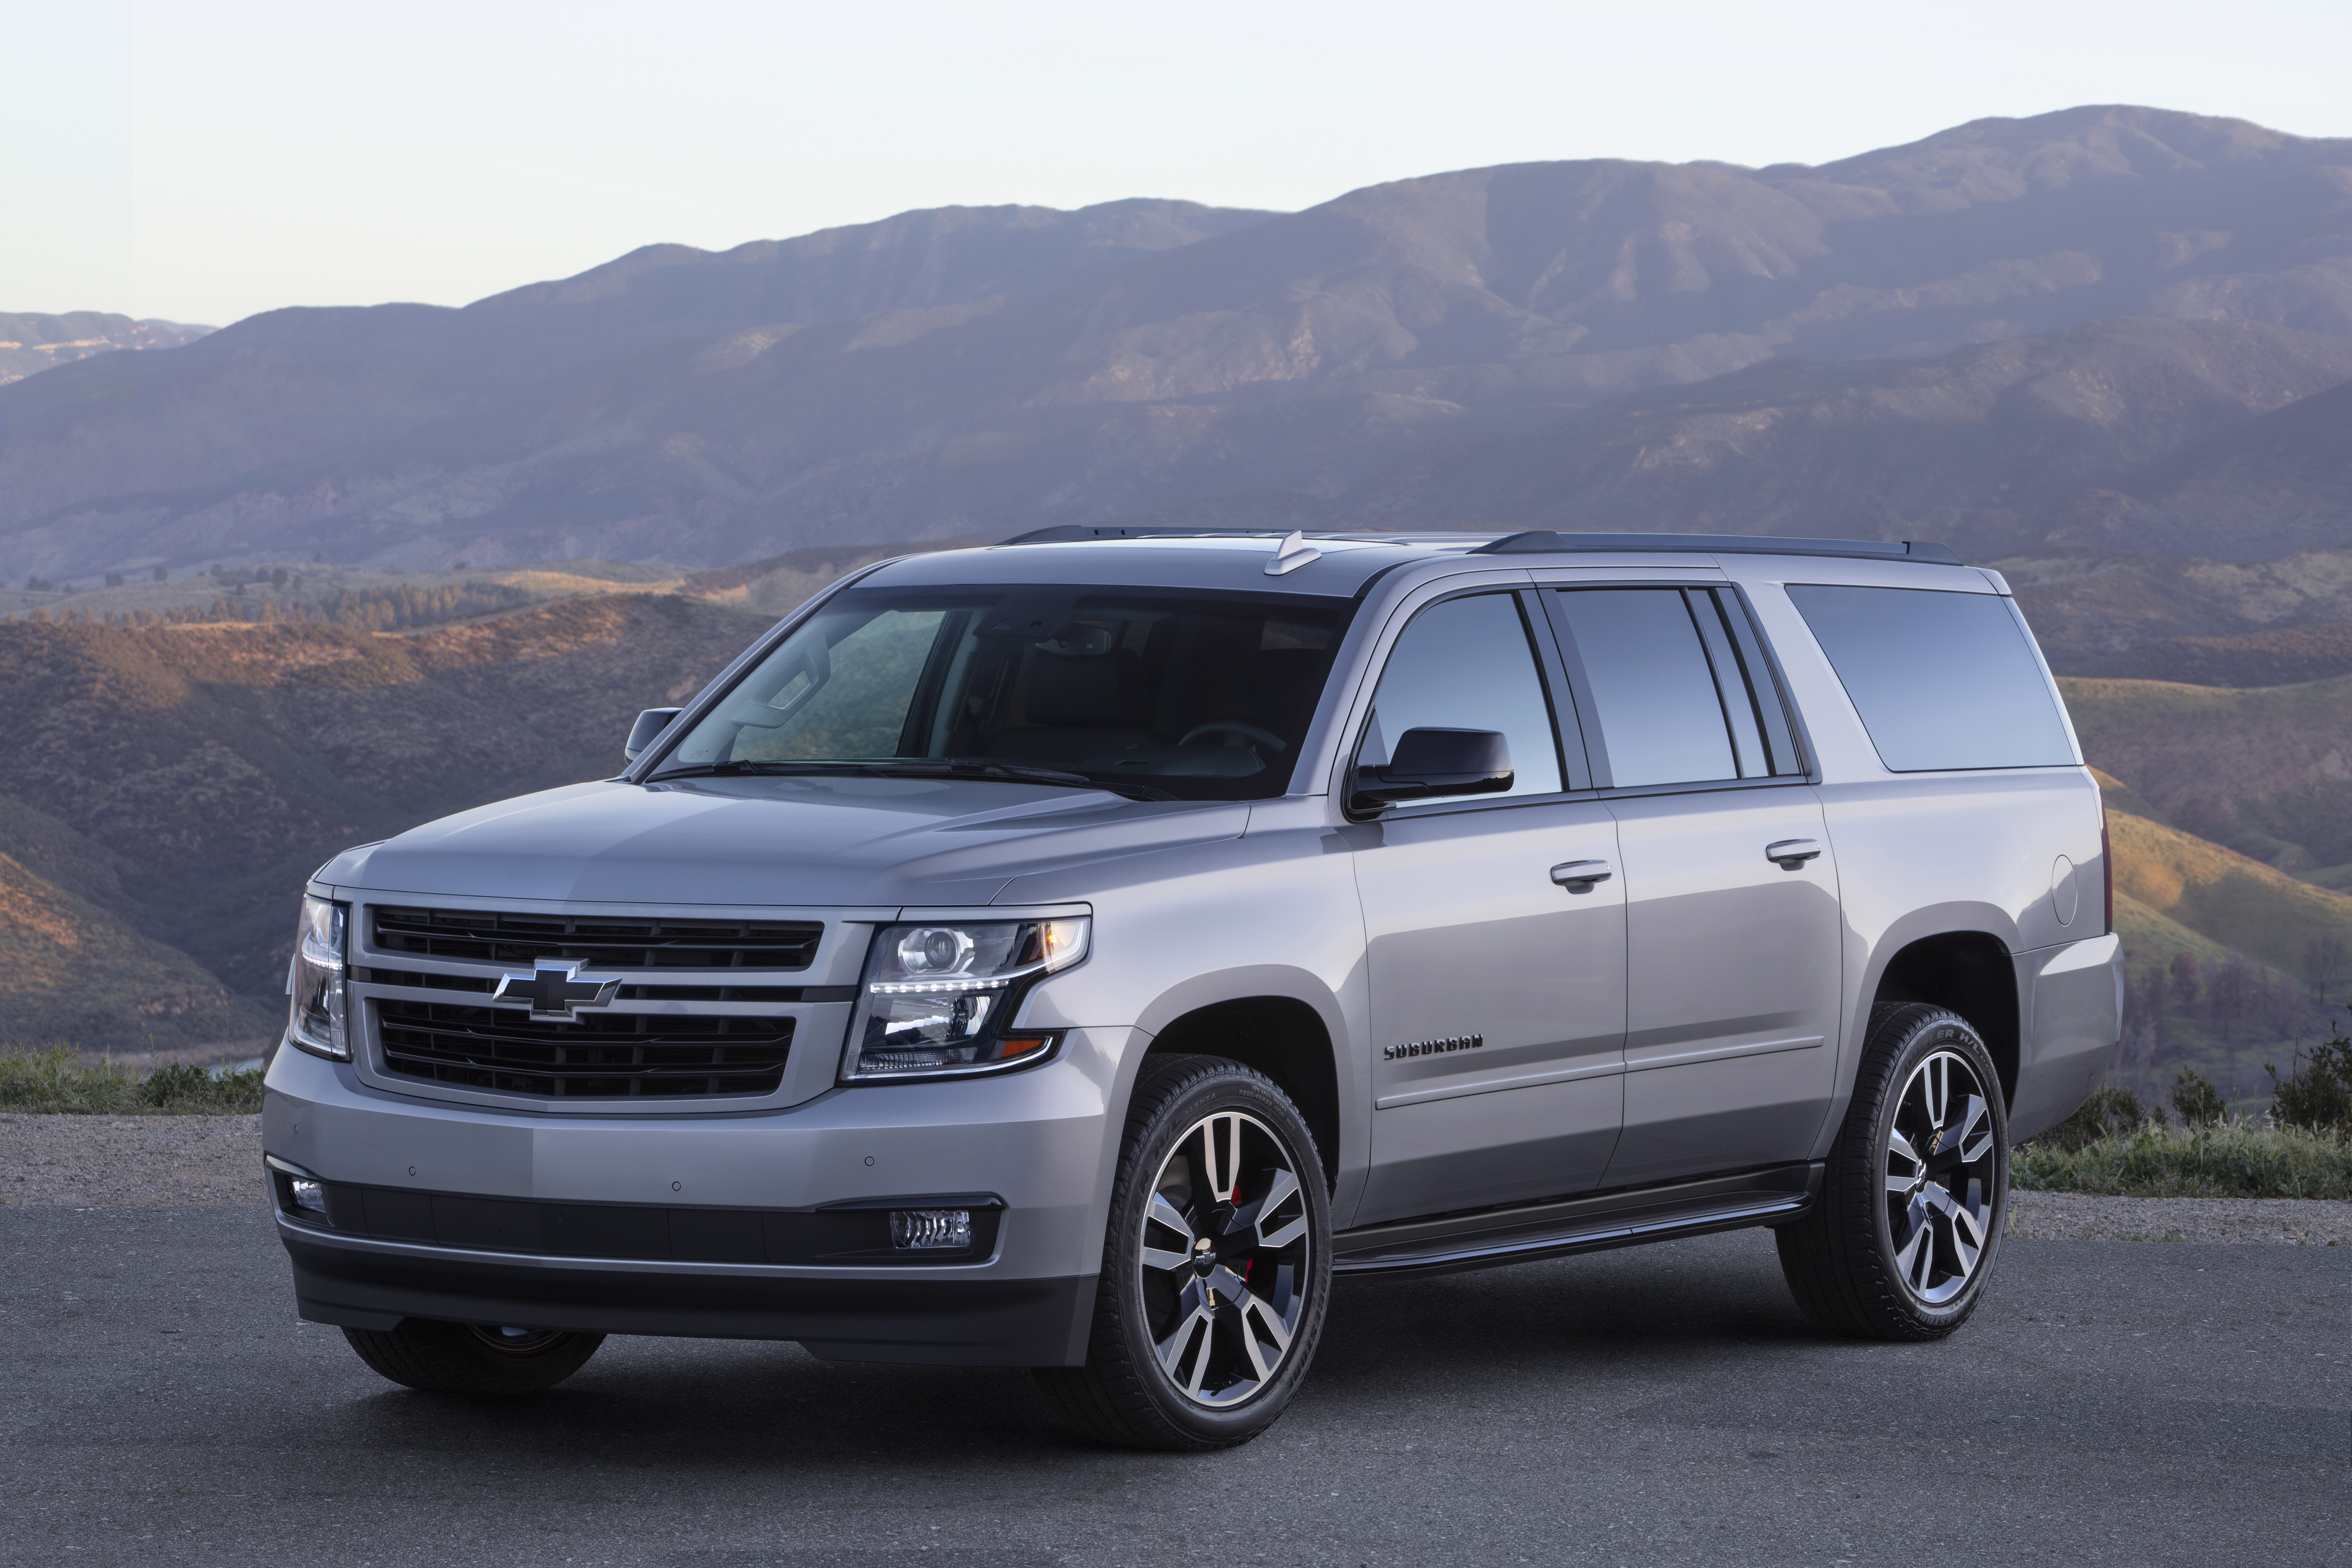 2019 Suburban RST Performance Package Brings V-8 Power and Style to